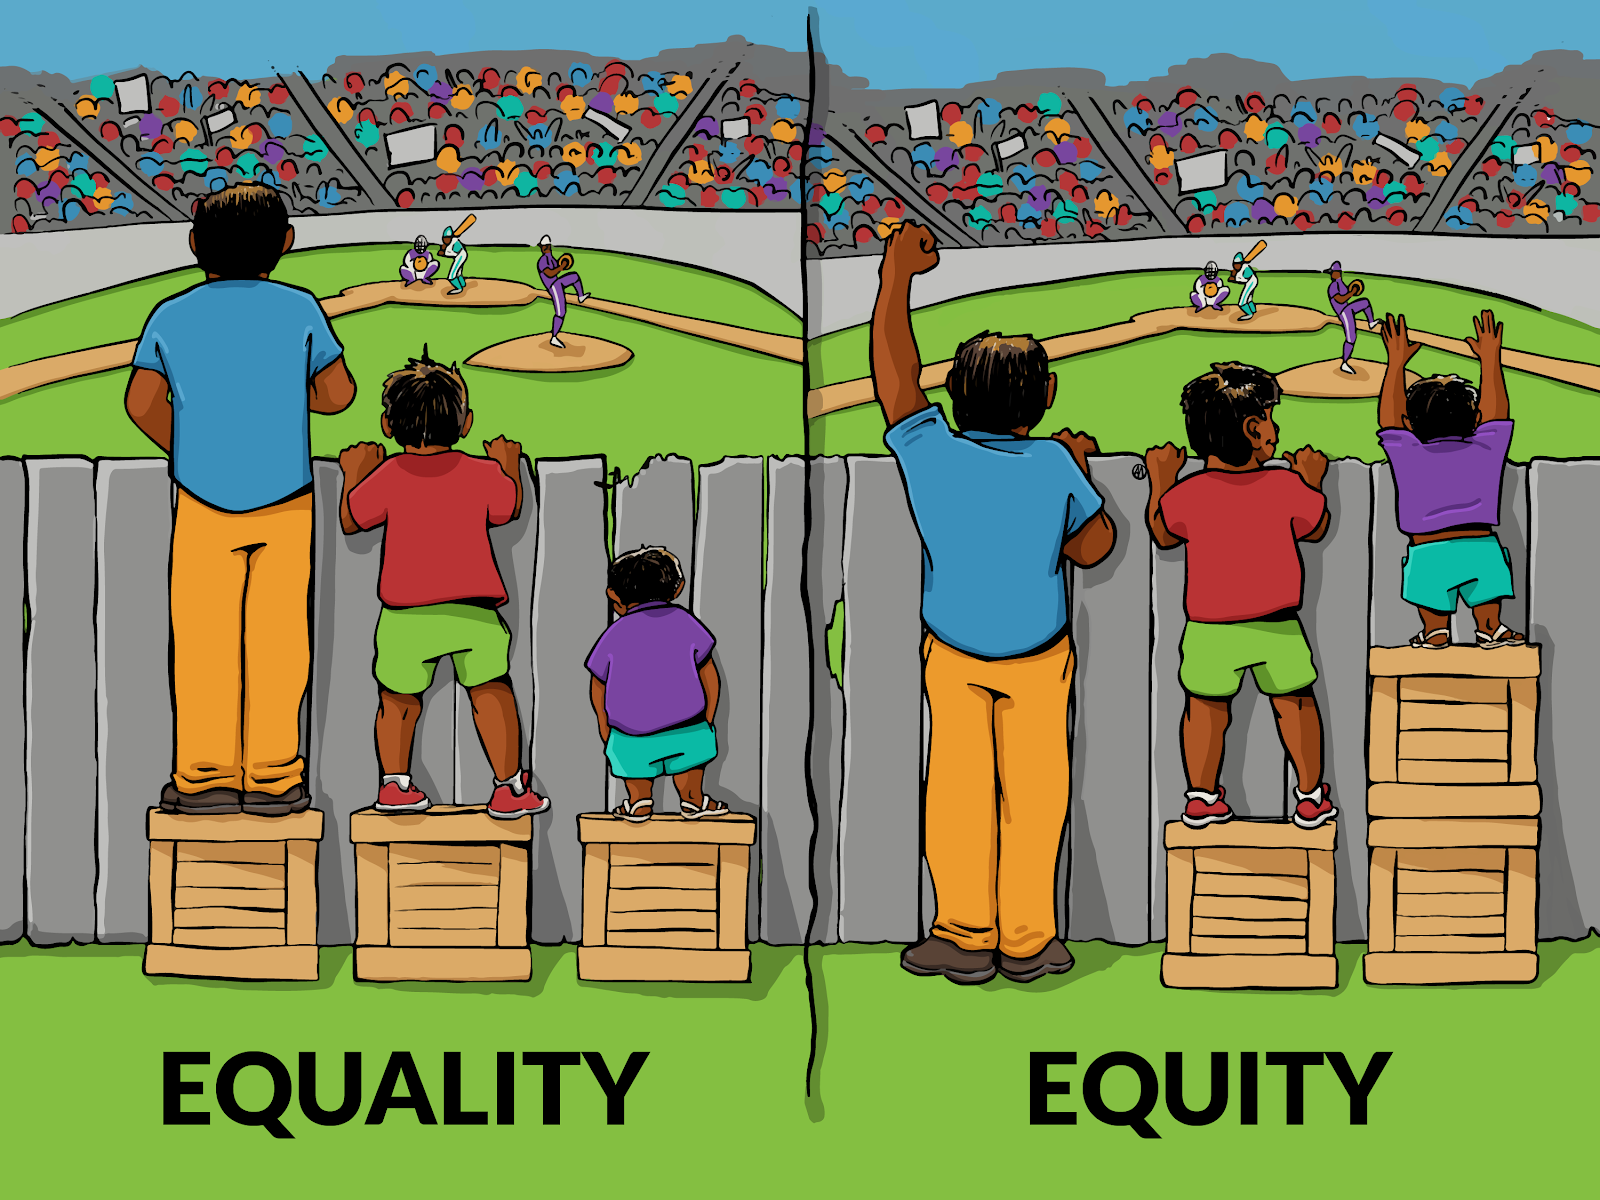 Equality versus Equity image to demonstrate the difference between the two.